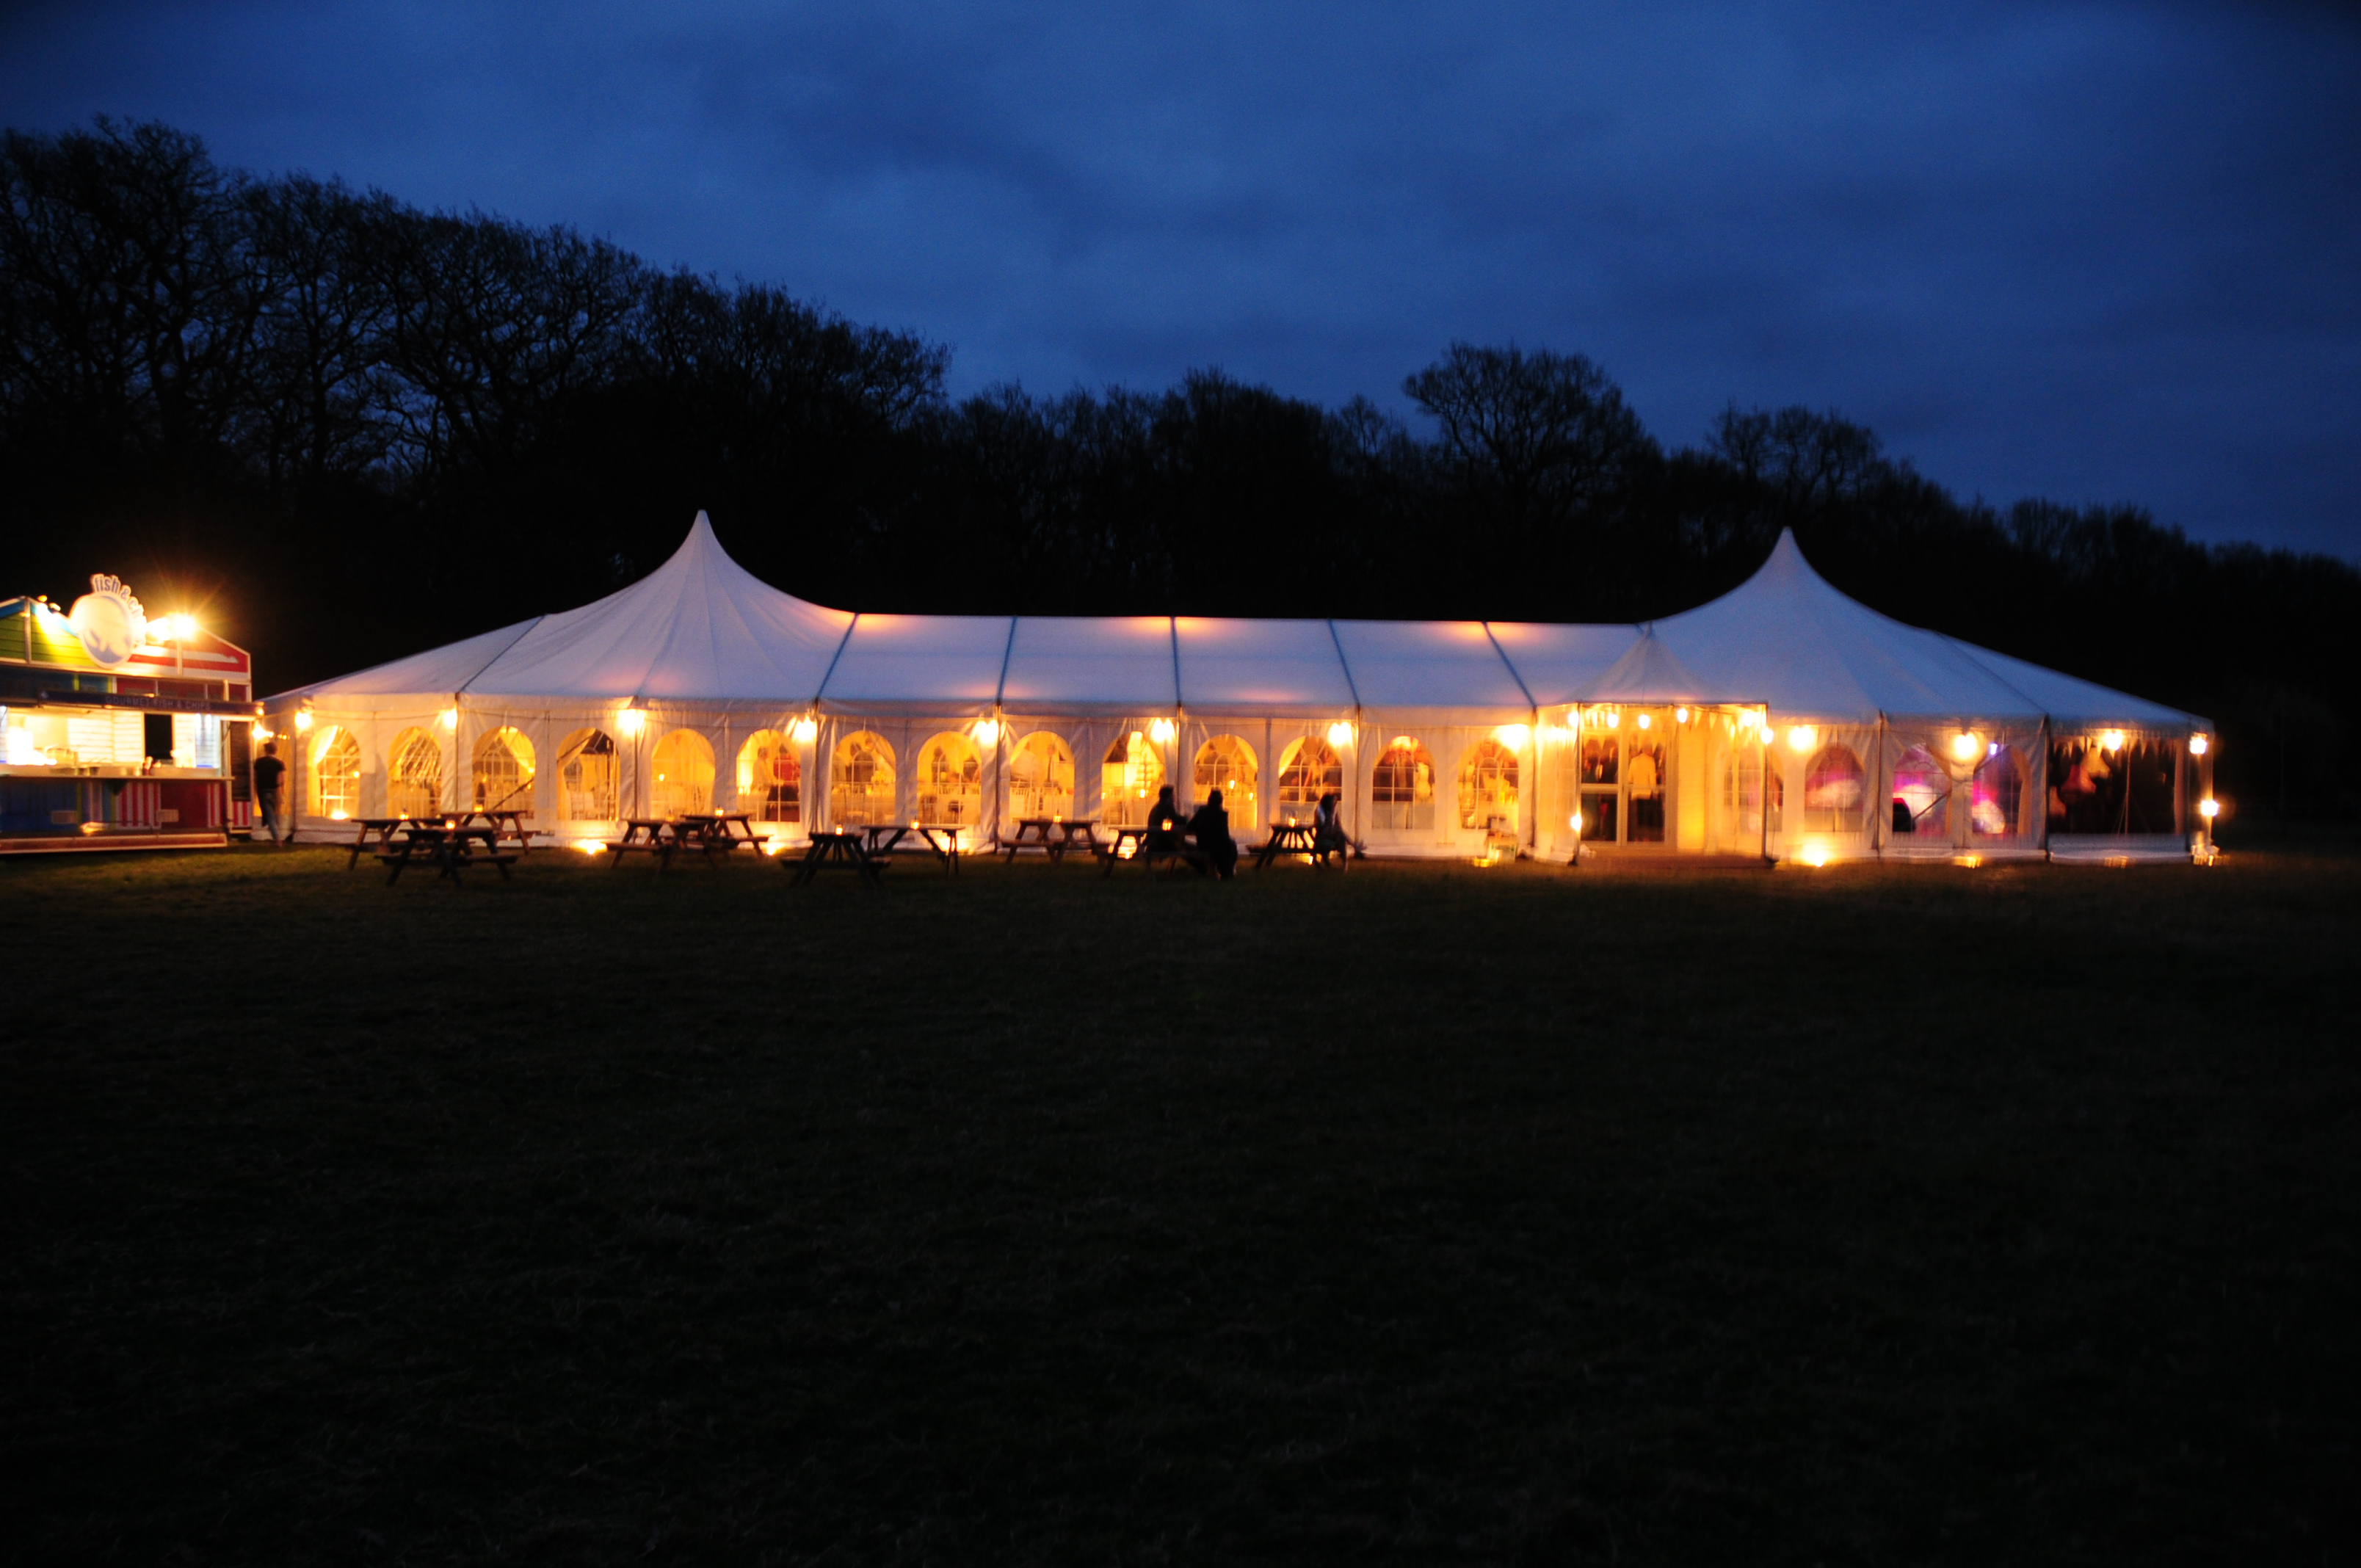 What a stunning Wedding marquee